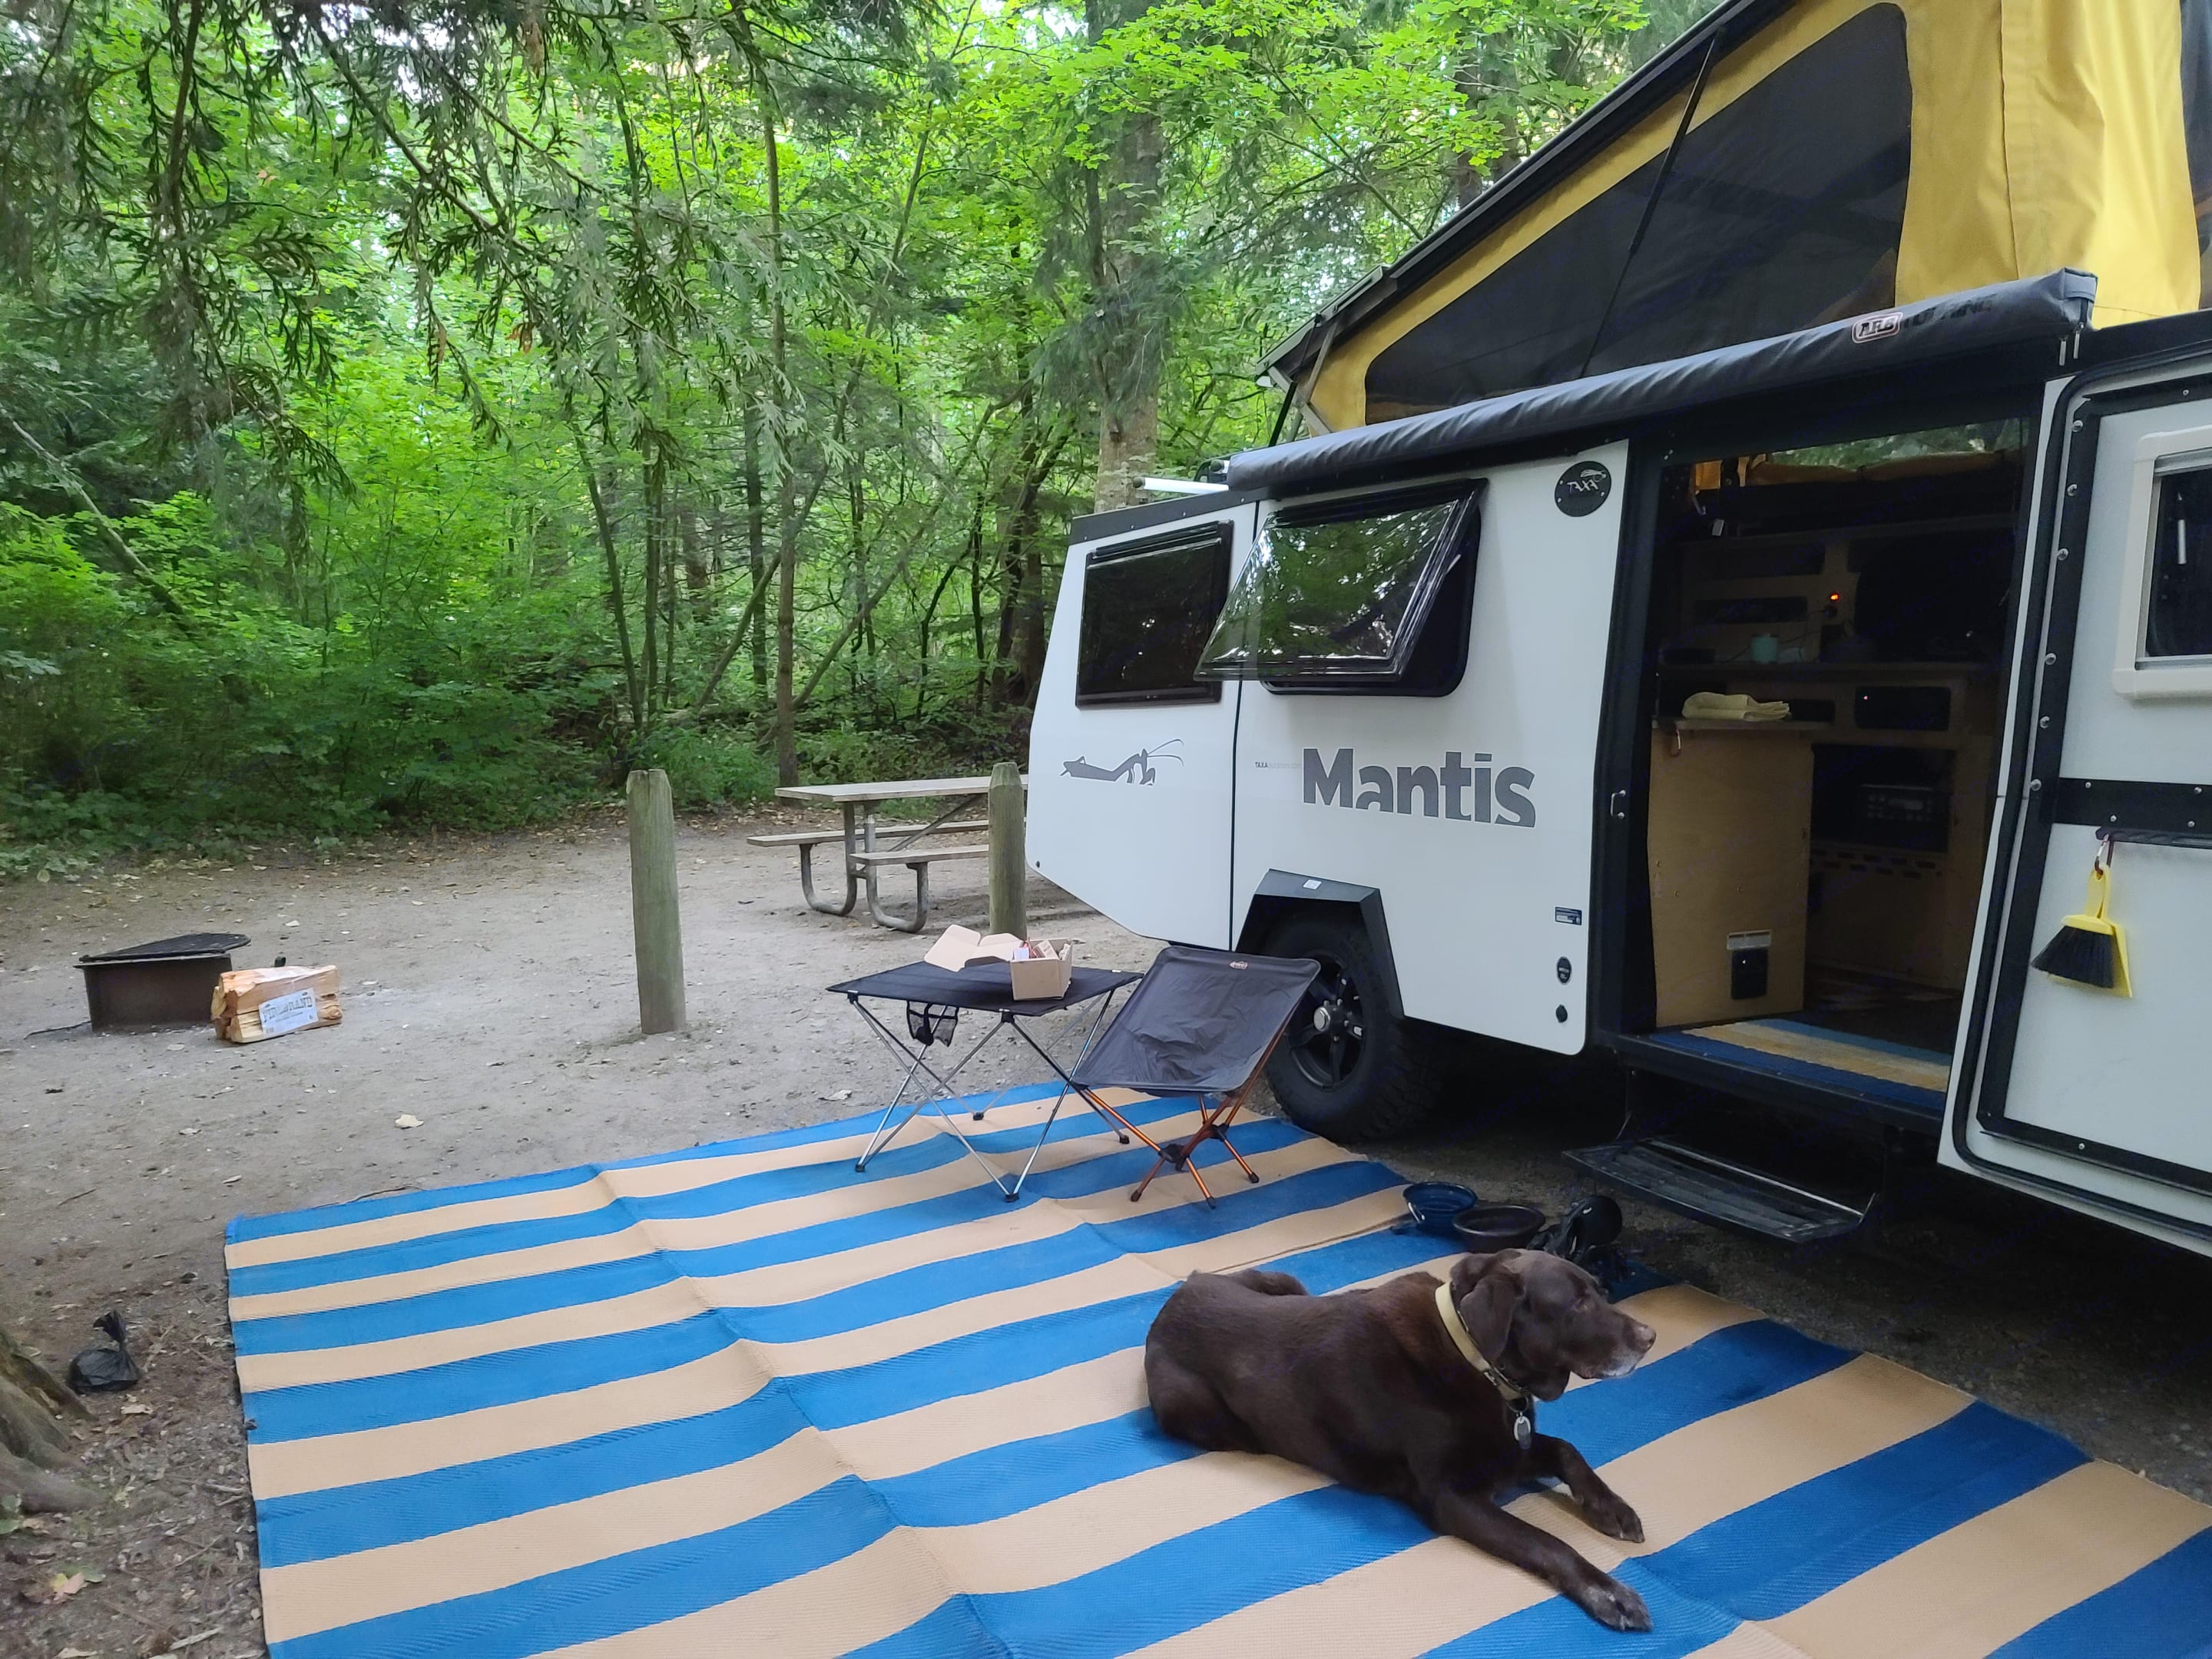 Also has awning which is not deployed in this picture.. Taxa Mantis 2020